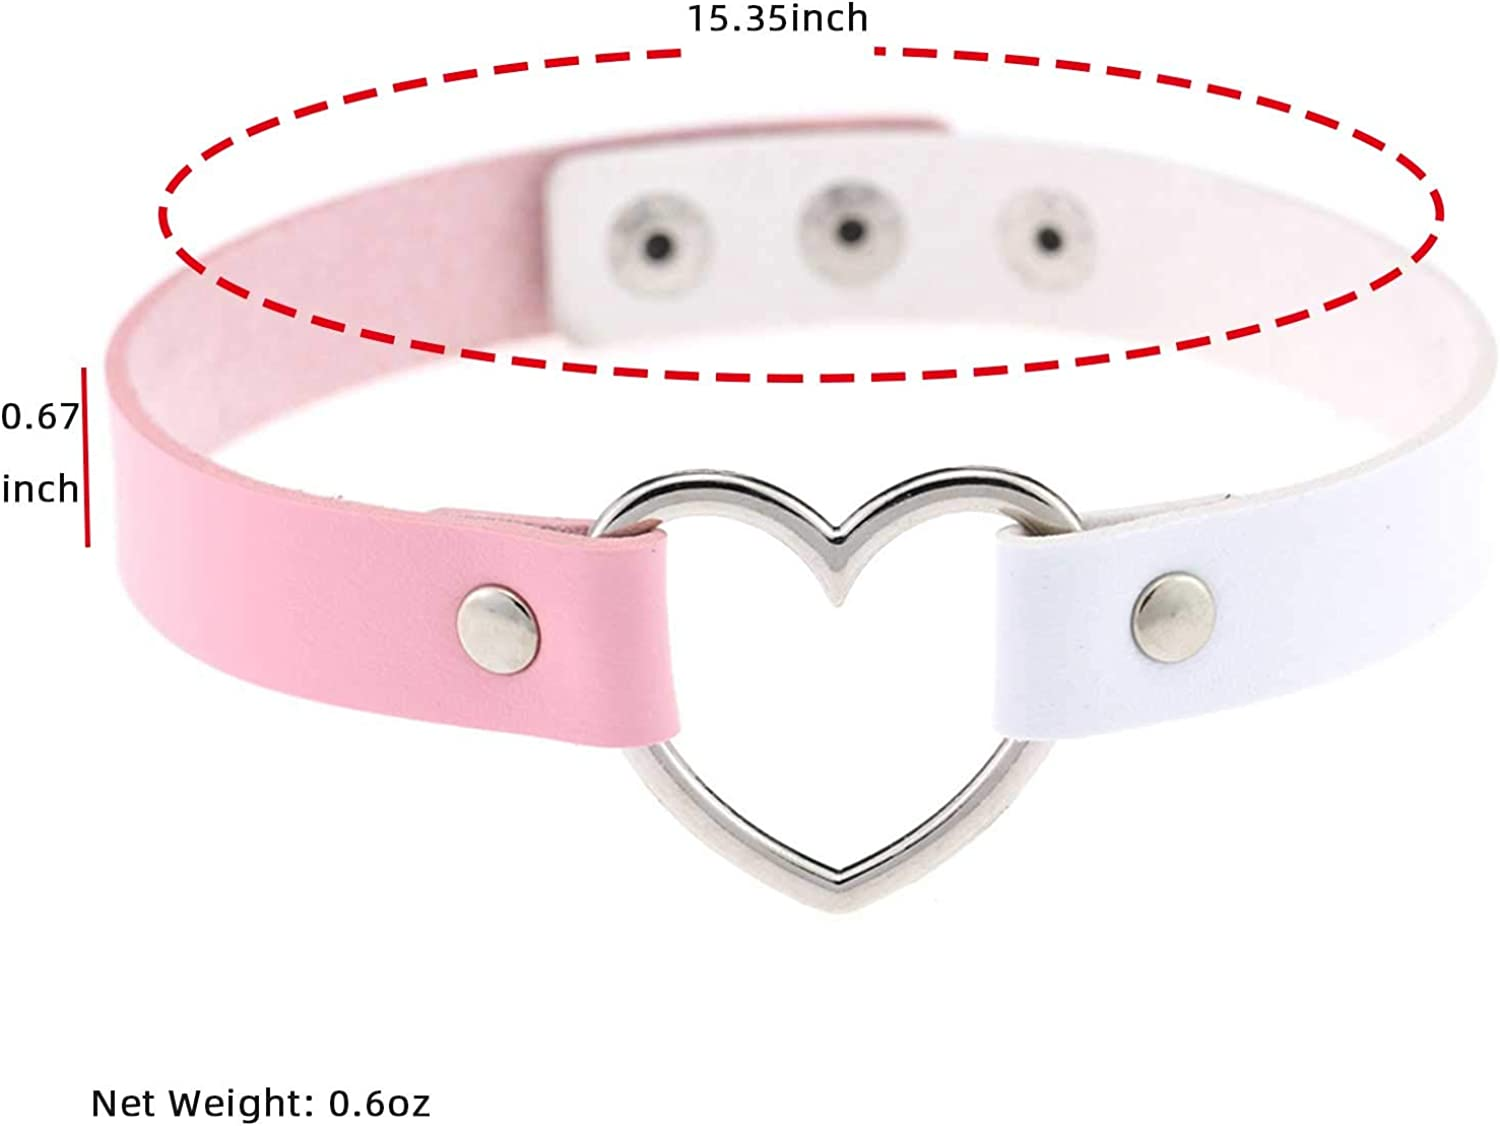 Heart Charms Shape Chocker Colorful PU Leather Choker Necklace Punk Gothic Collar Adjustable Necklace Jewelry Rhinestones Collars Chokers for Women Girls Cosplayer